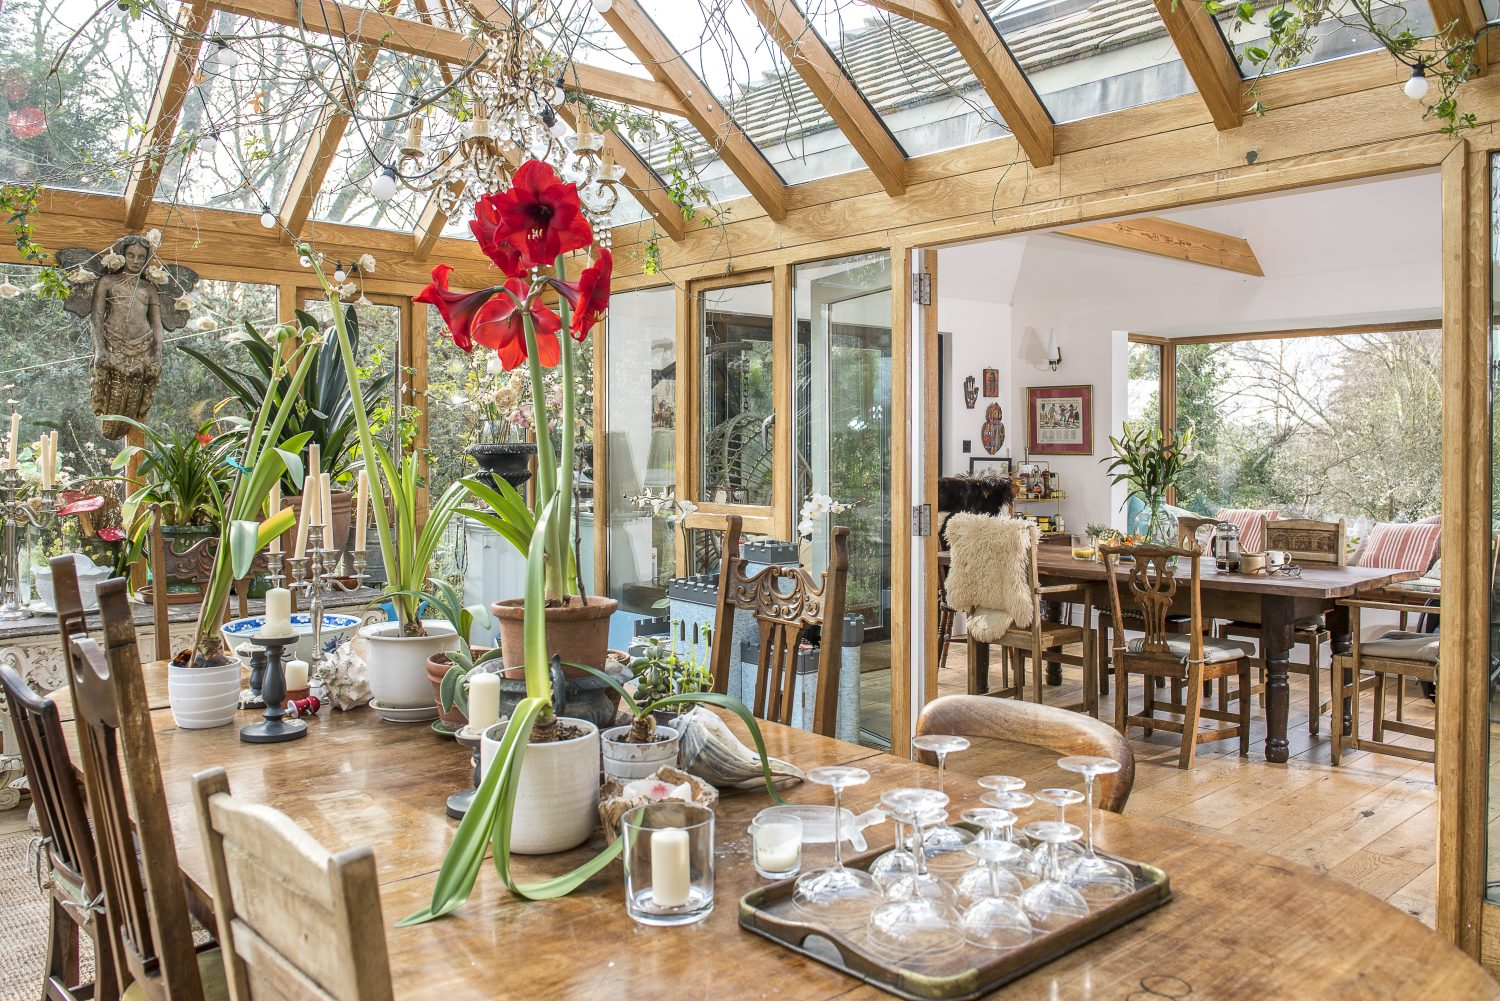 Previous pages & above: In order to create a better and more open space for socialising Clare knocked down the walls of the old entrance hall and sitting room, and connected the conservatory with the old kitchen